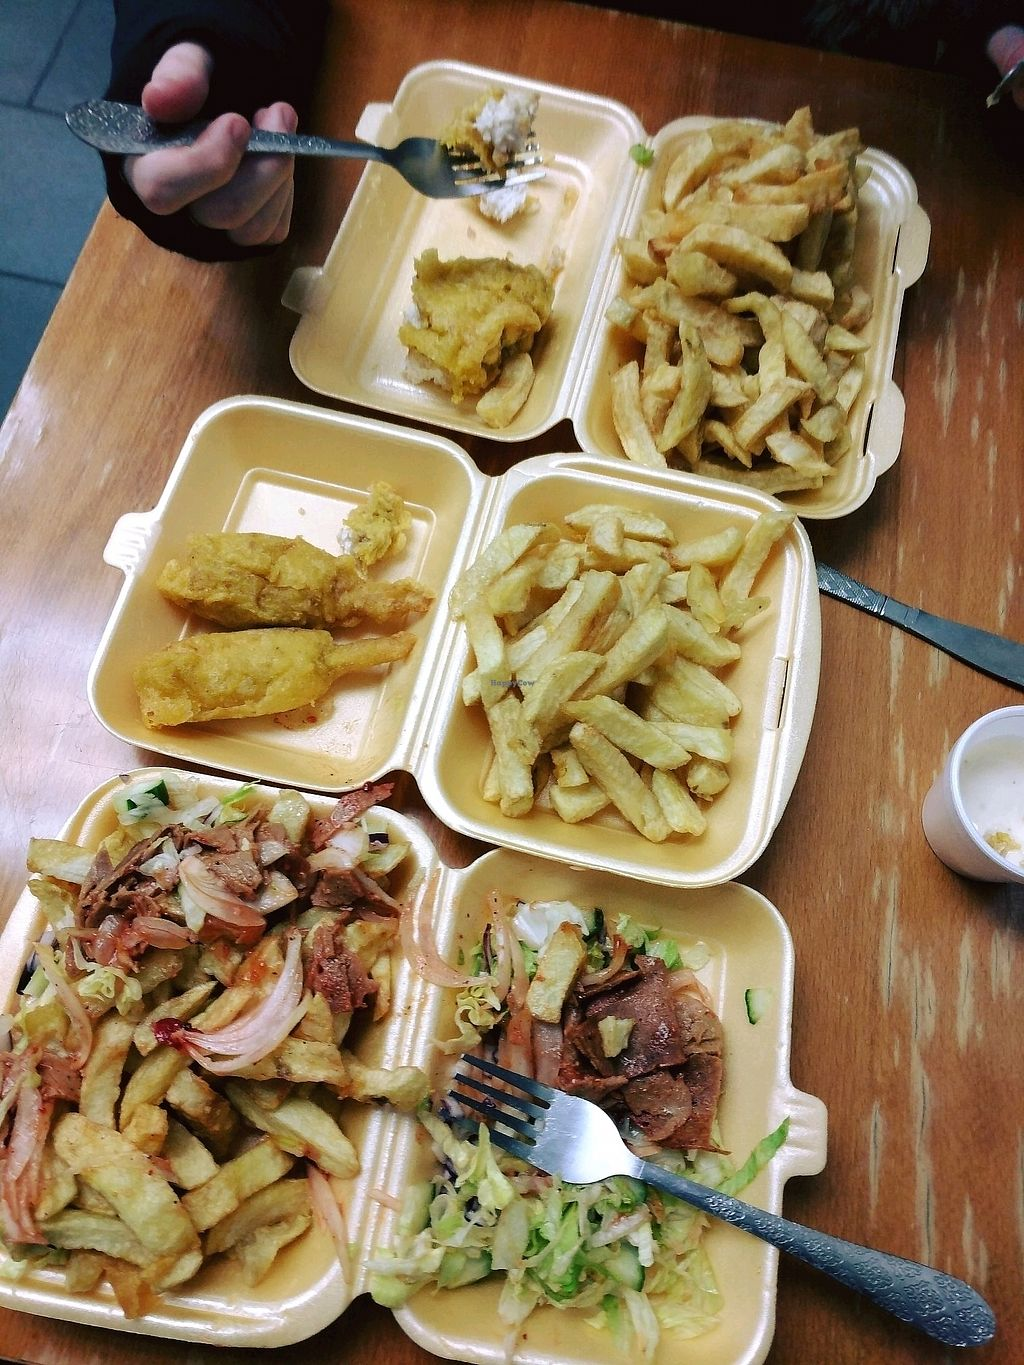 """Photo of The Veggie Chippy  by <a href=""""/members/profile/Sheina"""">Sheina</a> <br/>battered Vod and chips, 2 chicken legs and donner kebab! delicious! <br/> November 20, 2017  - <a href='/contact/abuse/image/79800/327479'>Report</a>"""